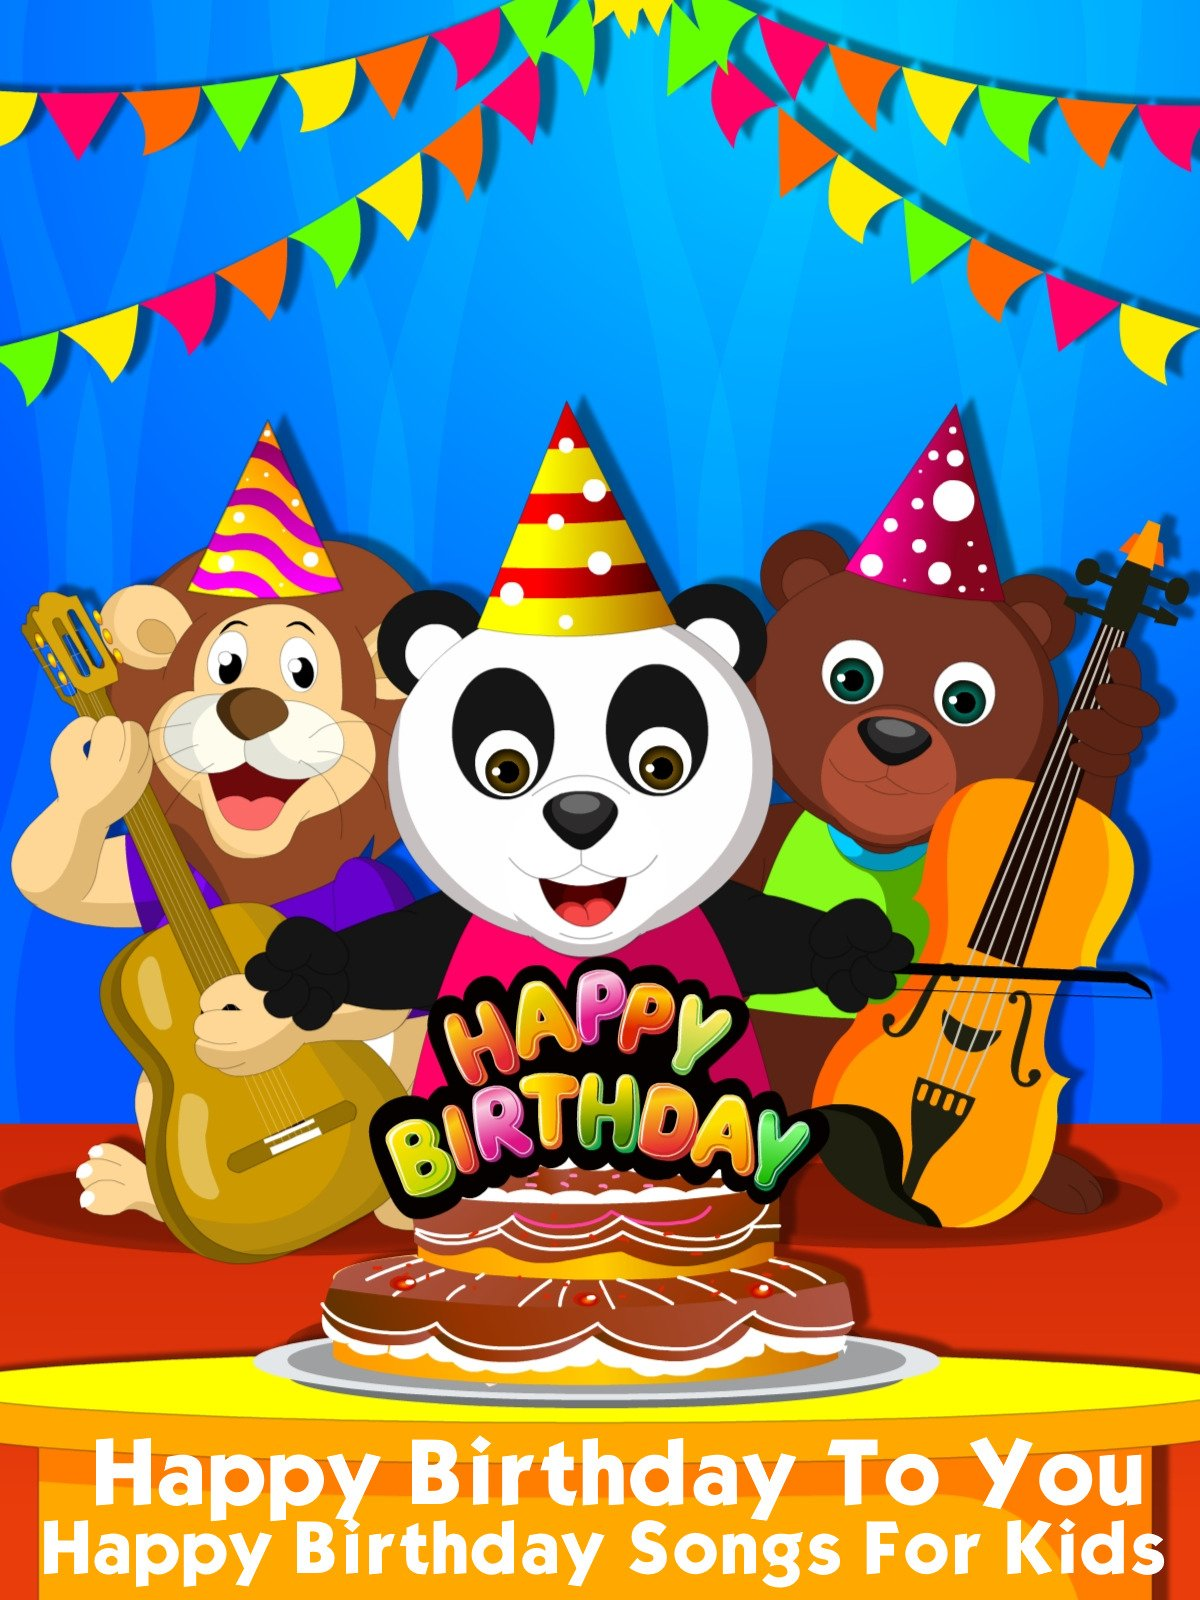 Amazon com: Watch Happy Birthday To You - Happy Birthday Songs For